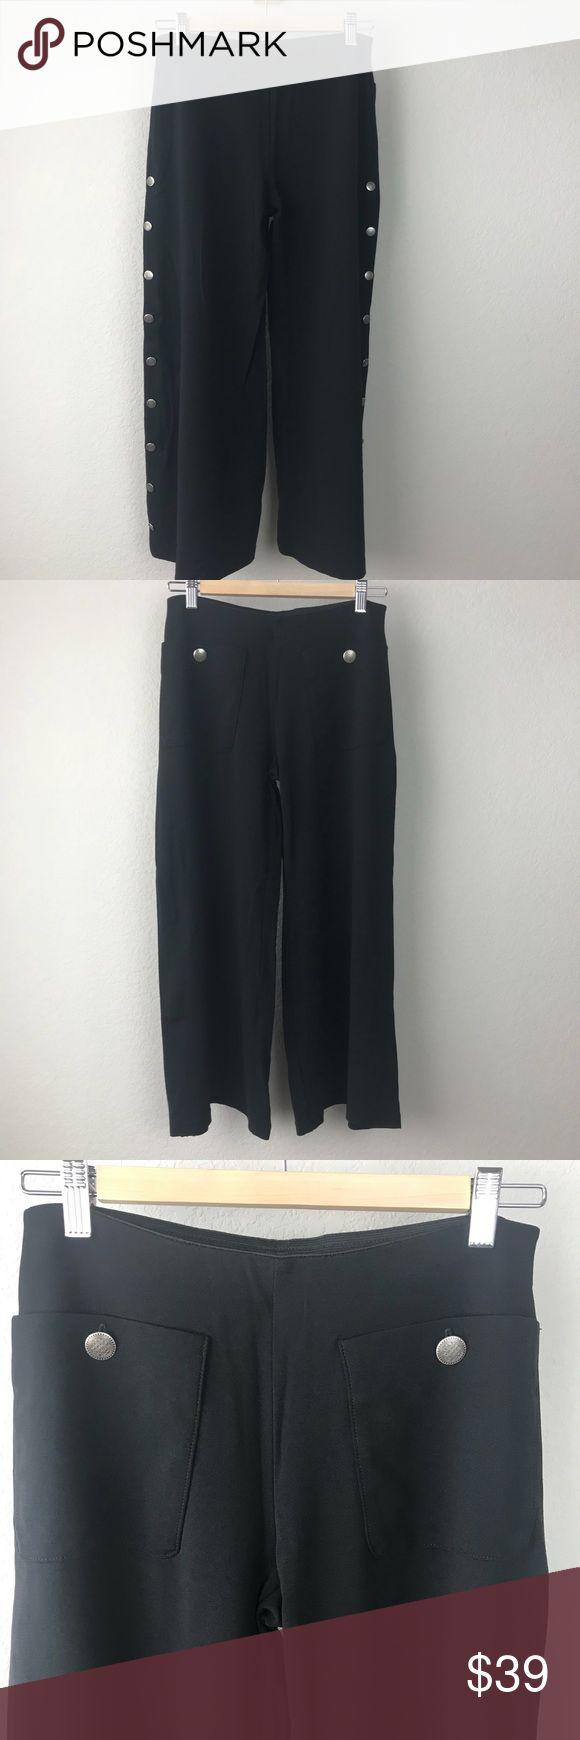 """VTG 90s Black Wide Leg Spanish Gaucho Culottes Vintage 90s Equestrian Brand thick stretchy black rayon nylon blend wide leg cropped culottes gaucho pants with awesome detailed silver buttons down legs like a mariachi. I've seen these at Zara recently, what's old is new. Great vintage condition, no holes tears or stains. Waist is 27"""", rise is 8.5"""", inseam is 24.5. Tag says P for Small Vintage Pants Wide Leg"""